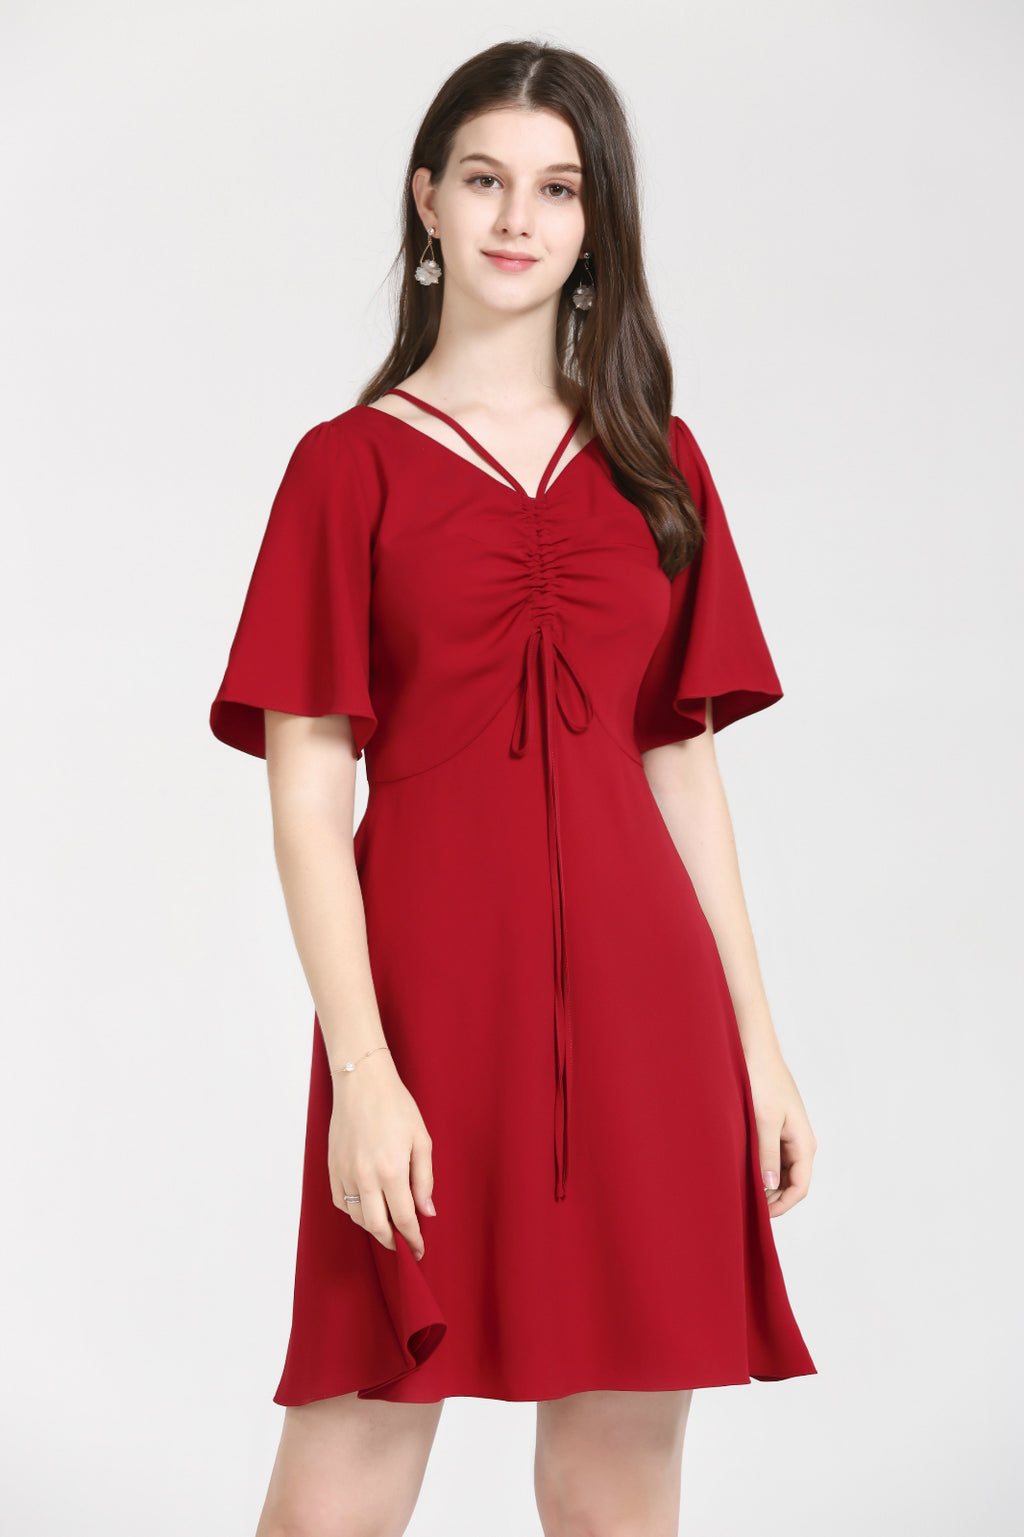 Red Dress With Flowy Sleeves